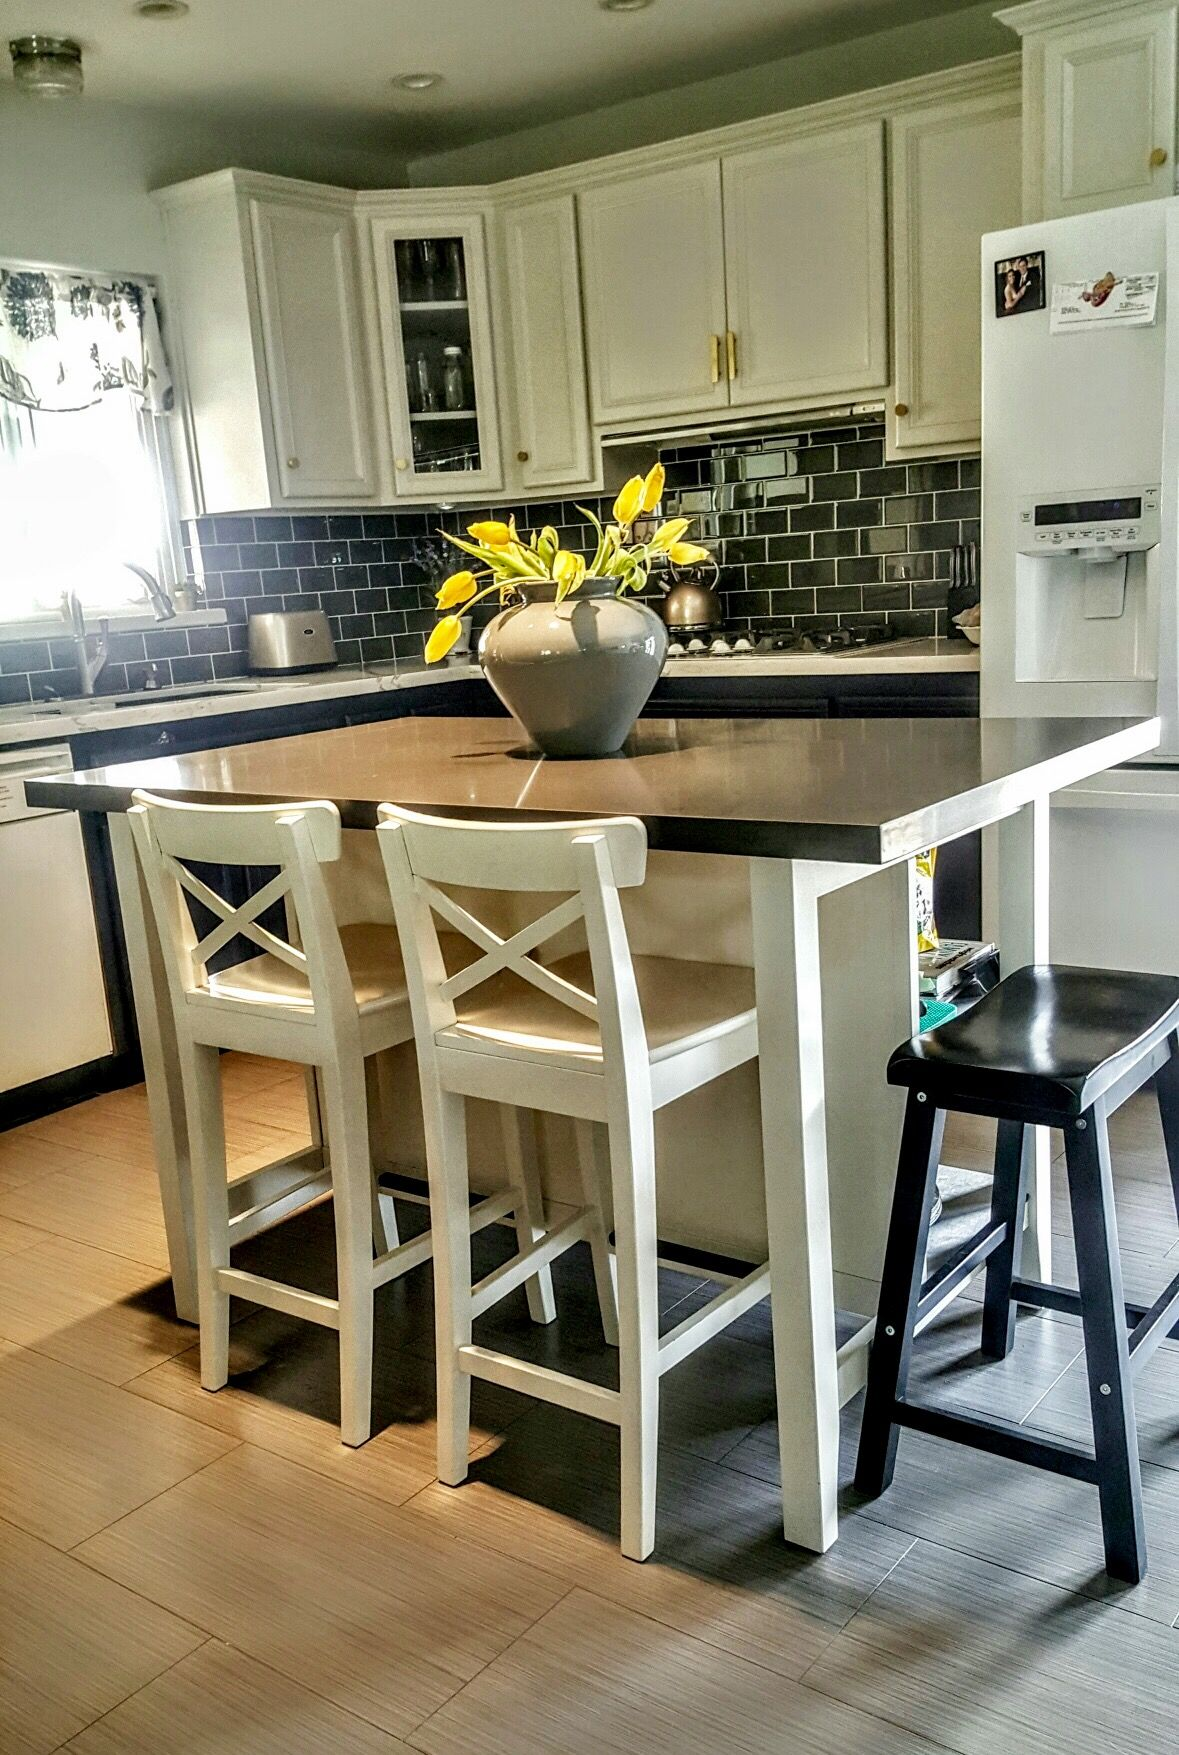 Ikea Stenstorp Kitchen Island Hack We added grey quartz on top